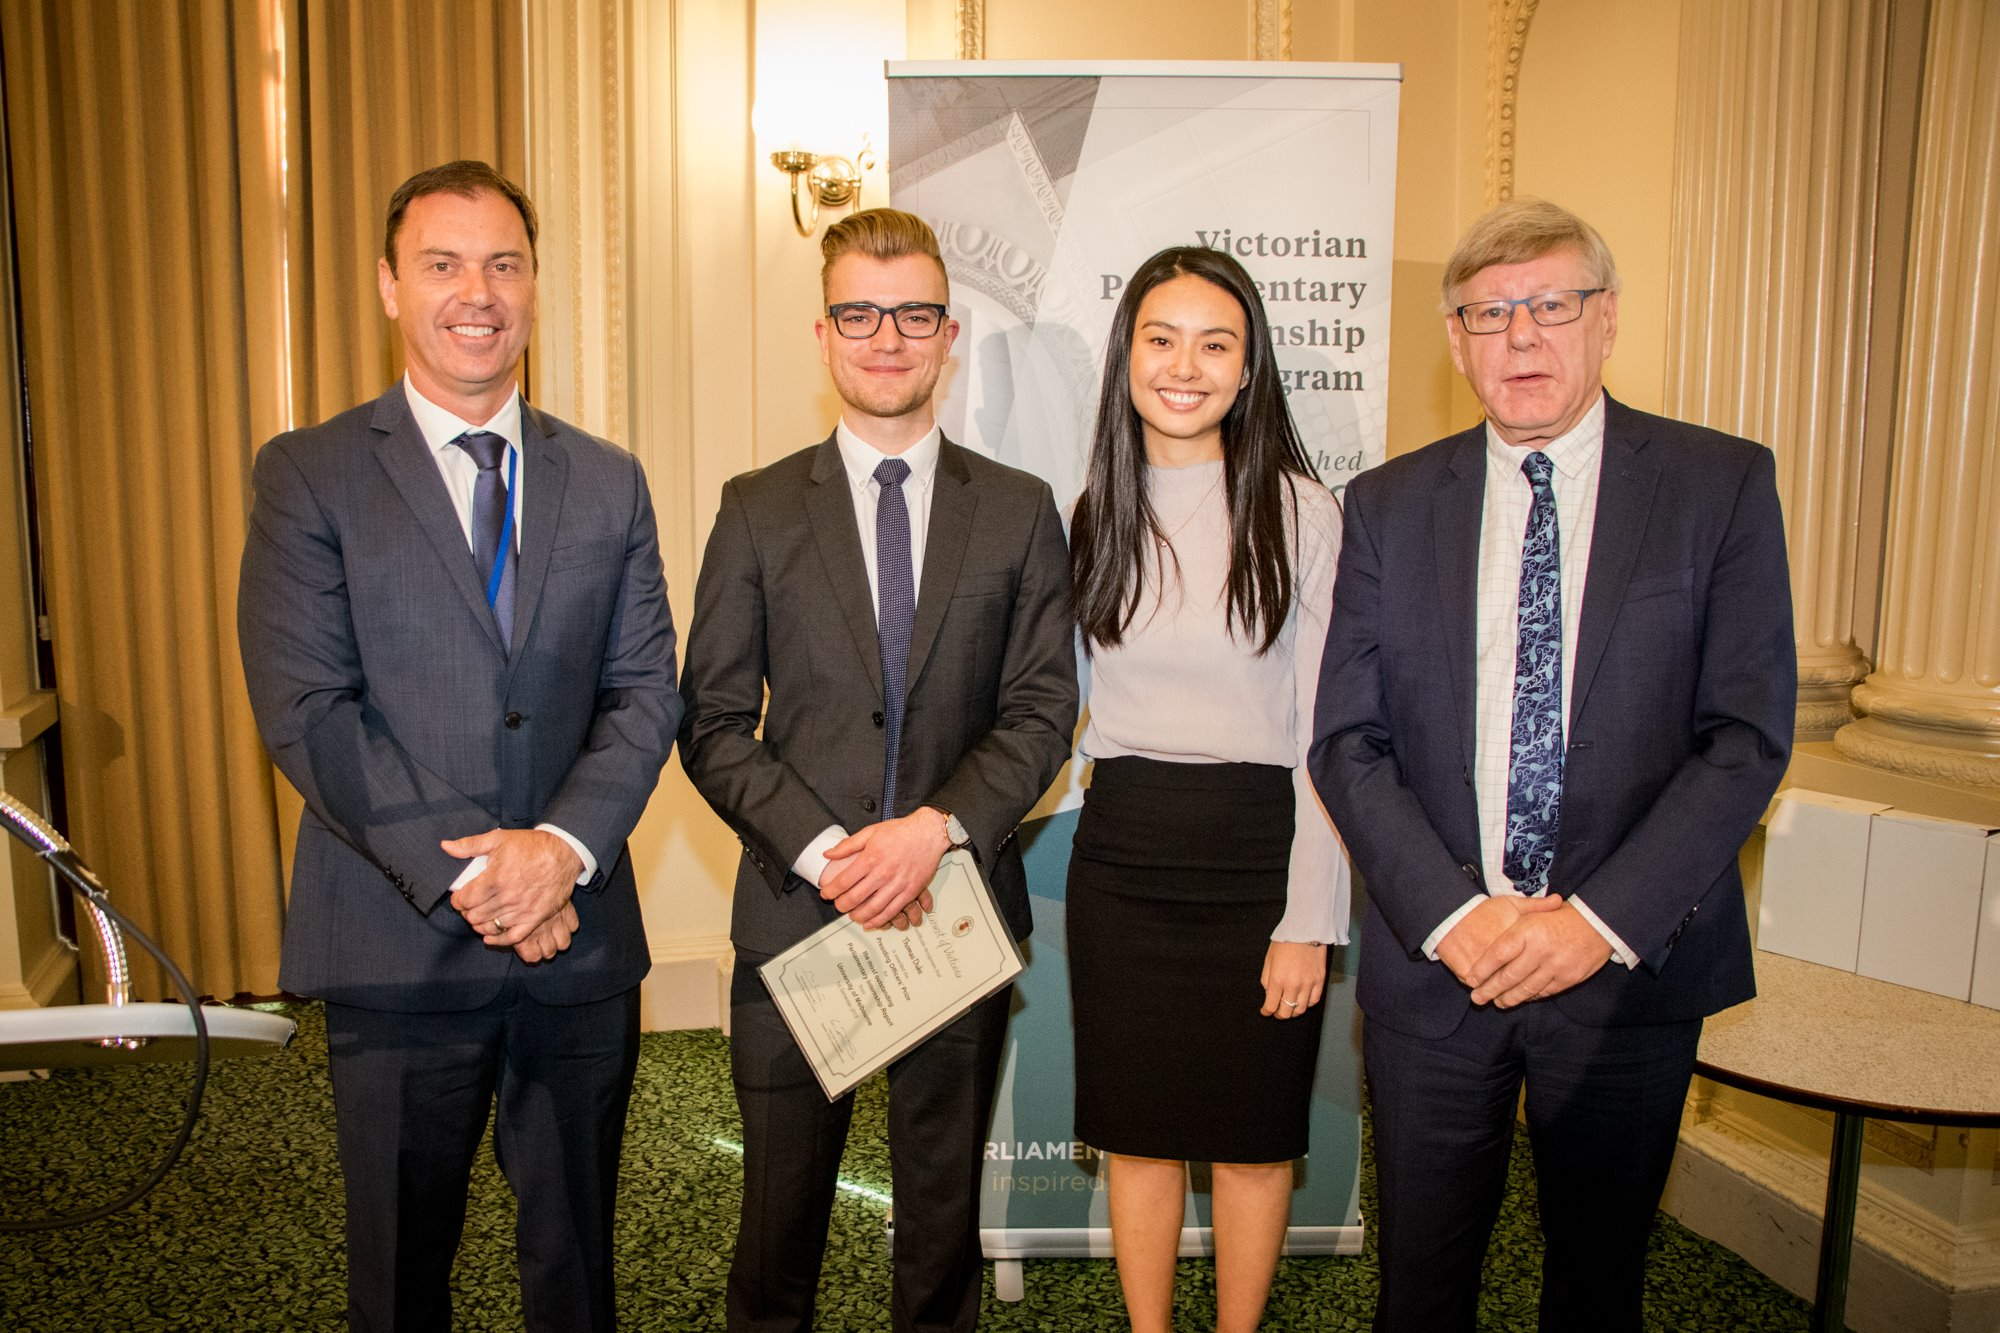 Thomas Duke from The University of Melbourne and Emily Tang from Monash University received the Presiding Officers' Prize for most outstanding internship reports in 2018